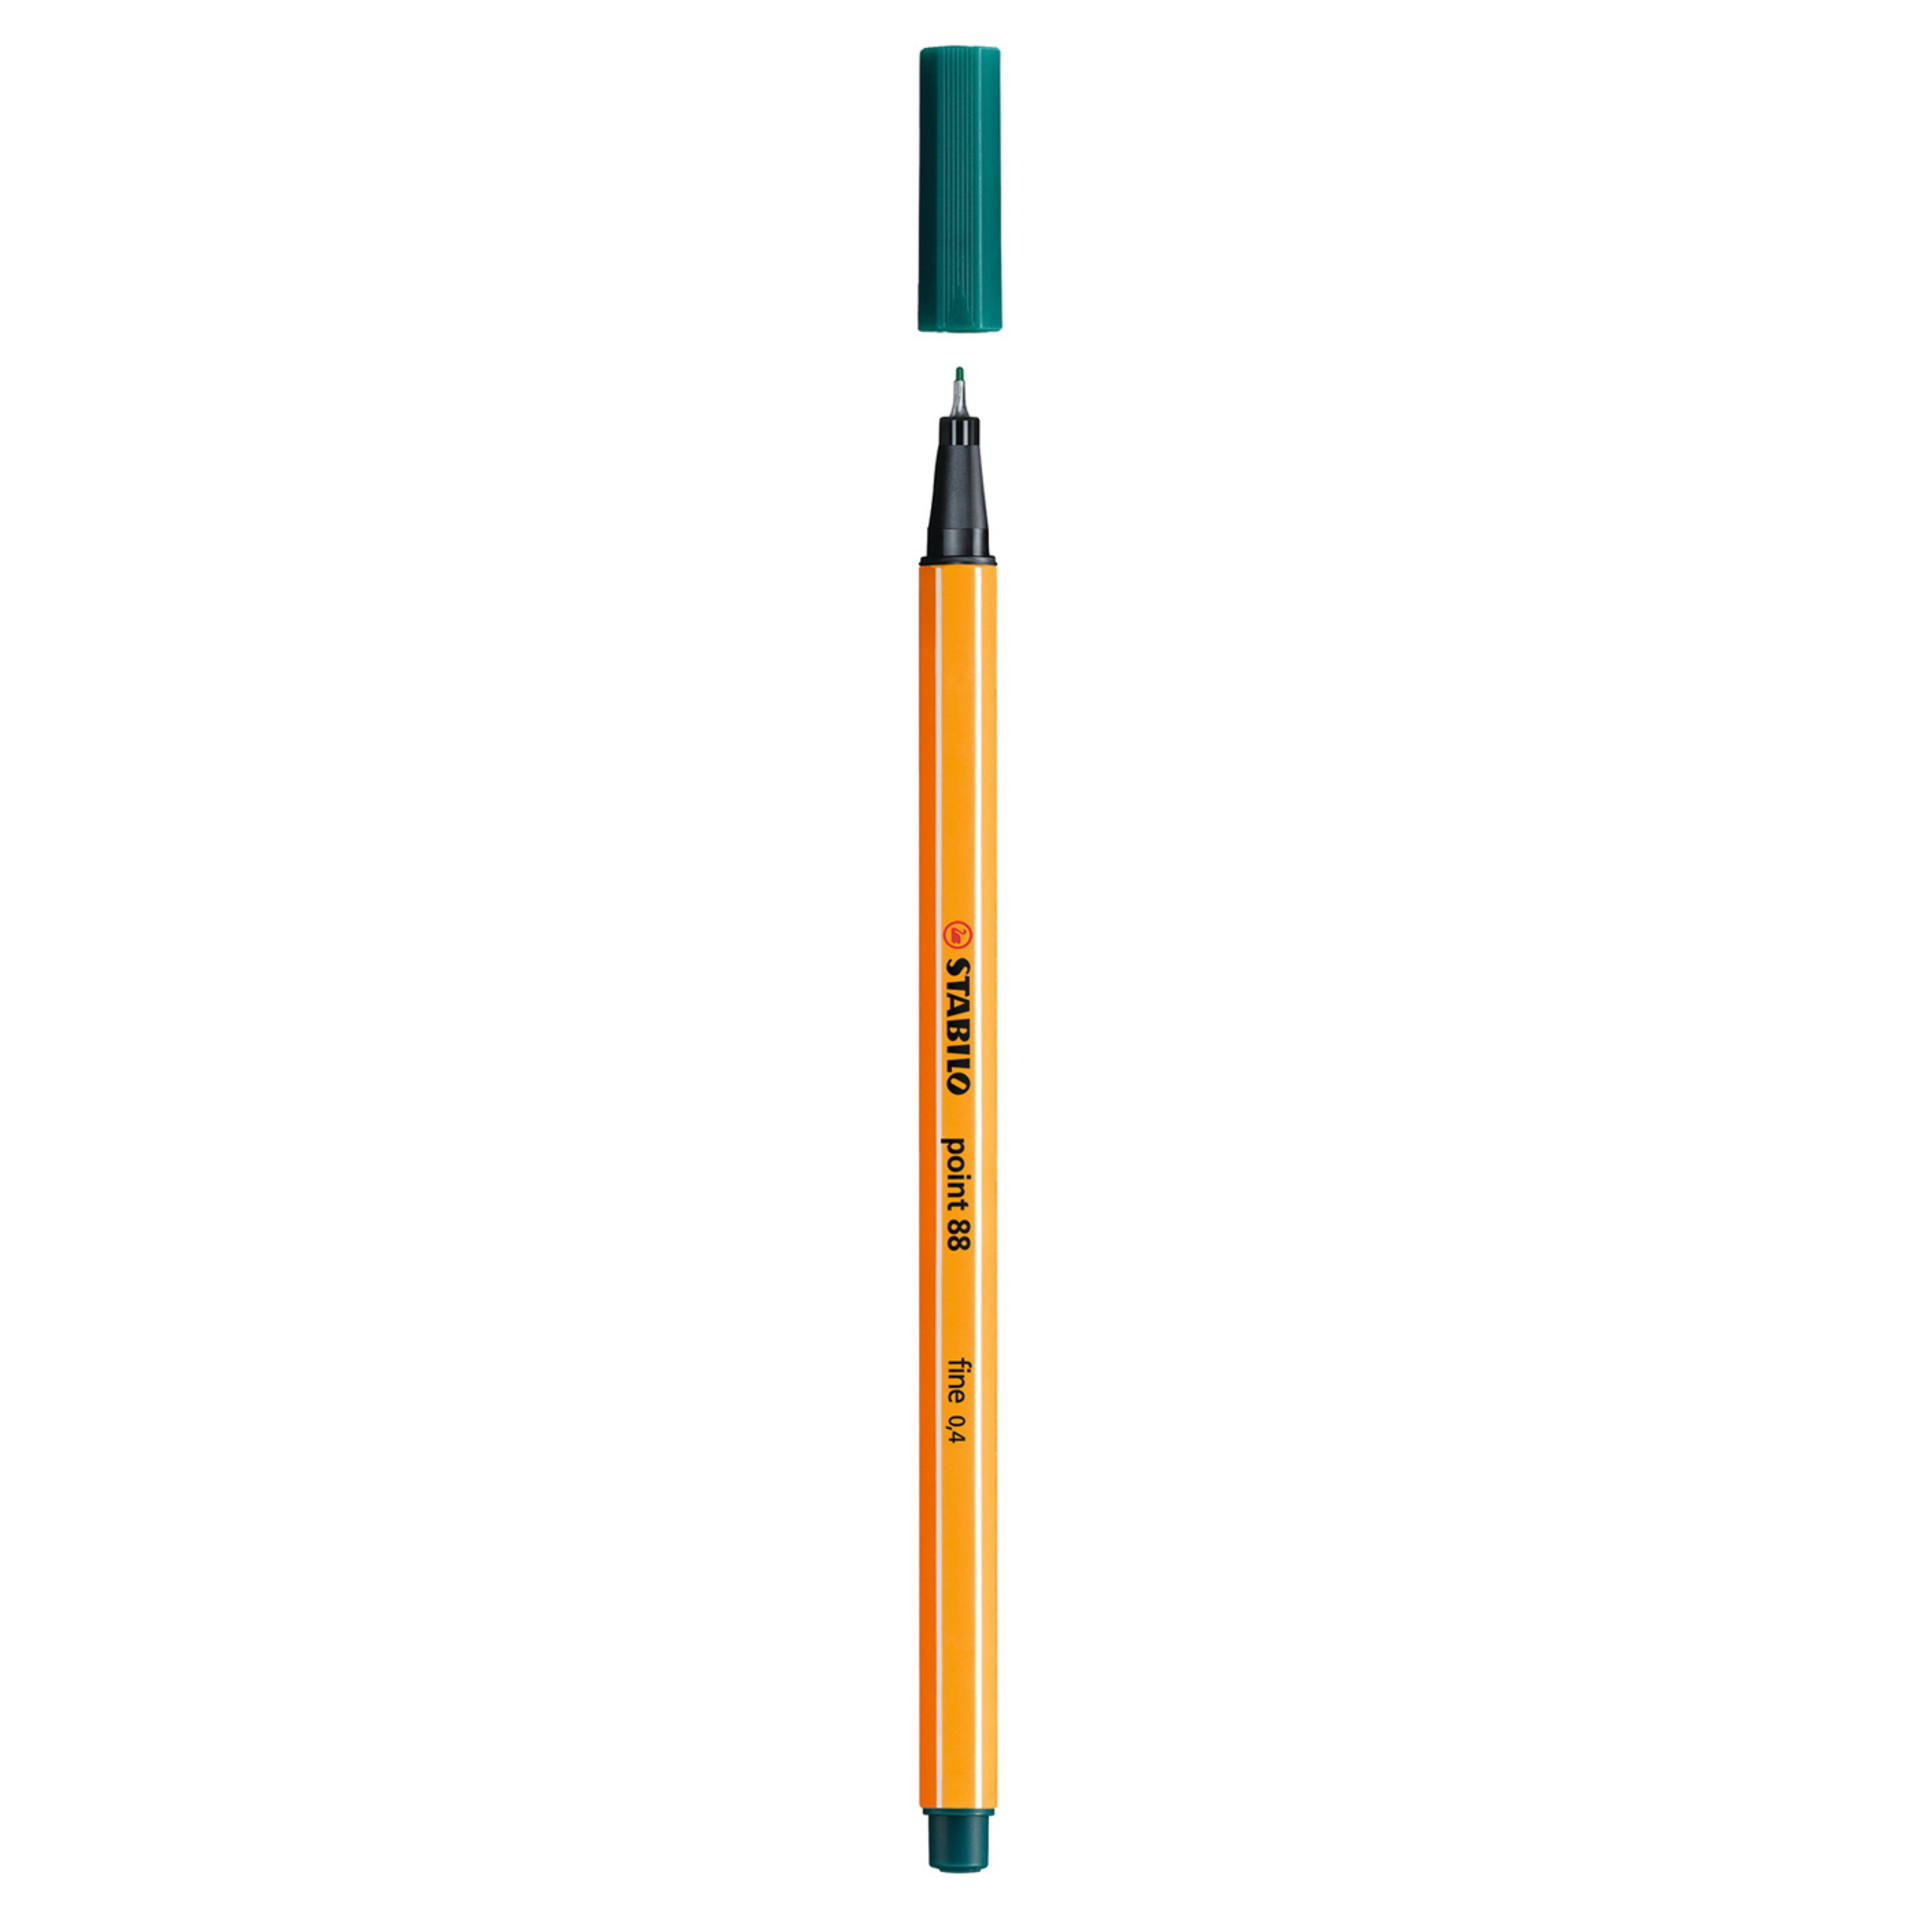 Stabilo Point 88 .4mm Fineliner Pen – Pine Green